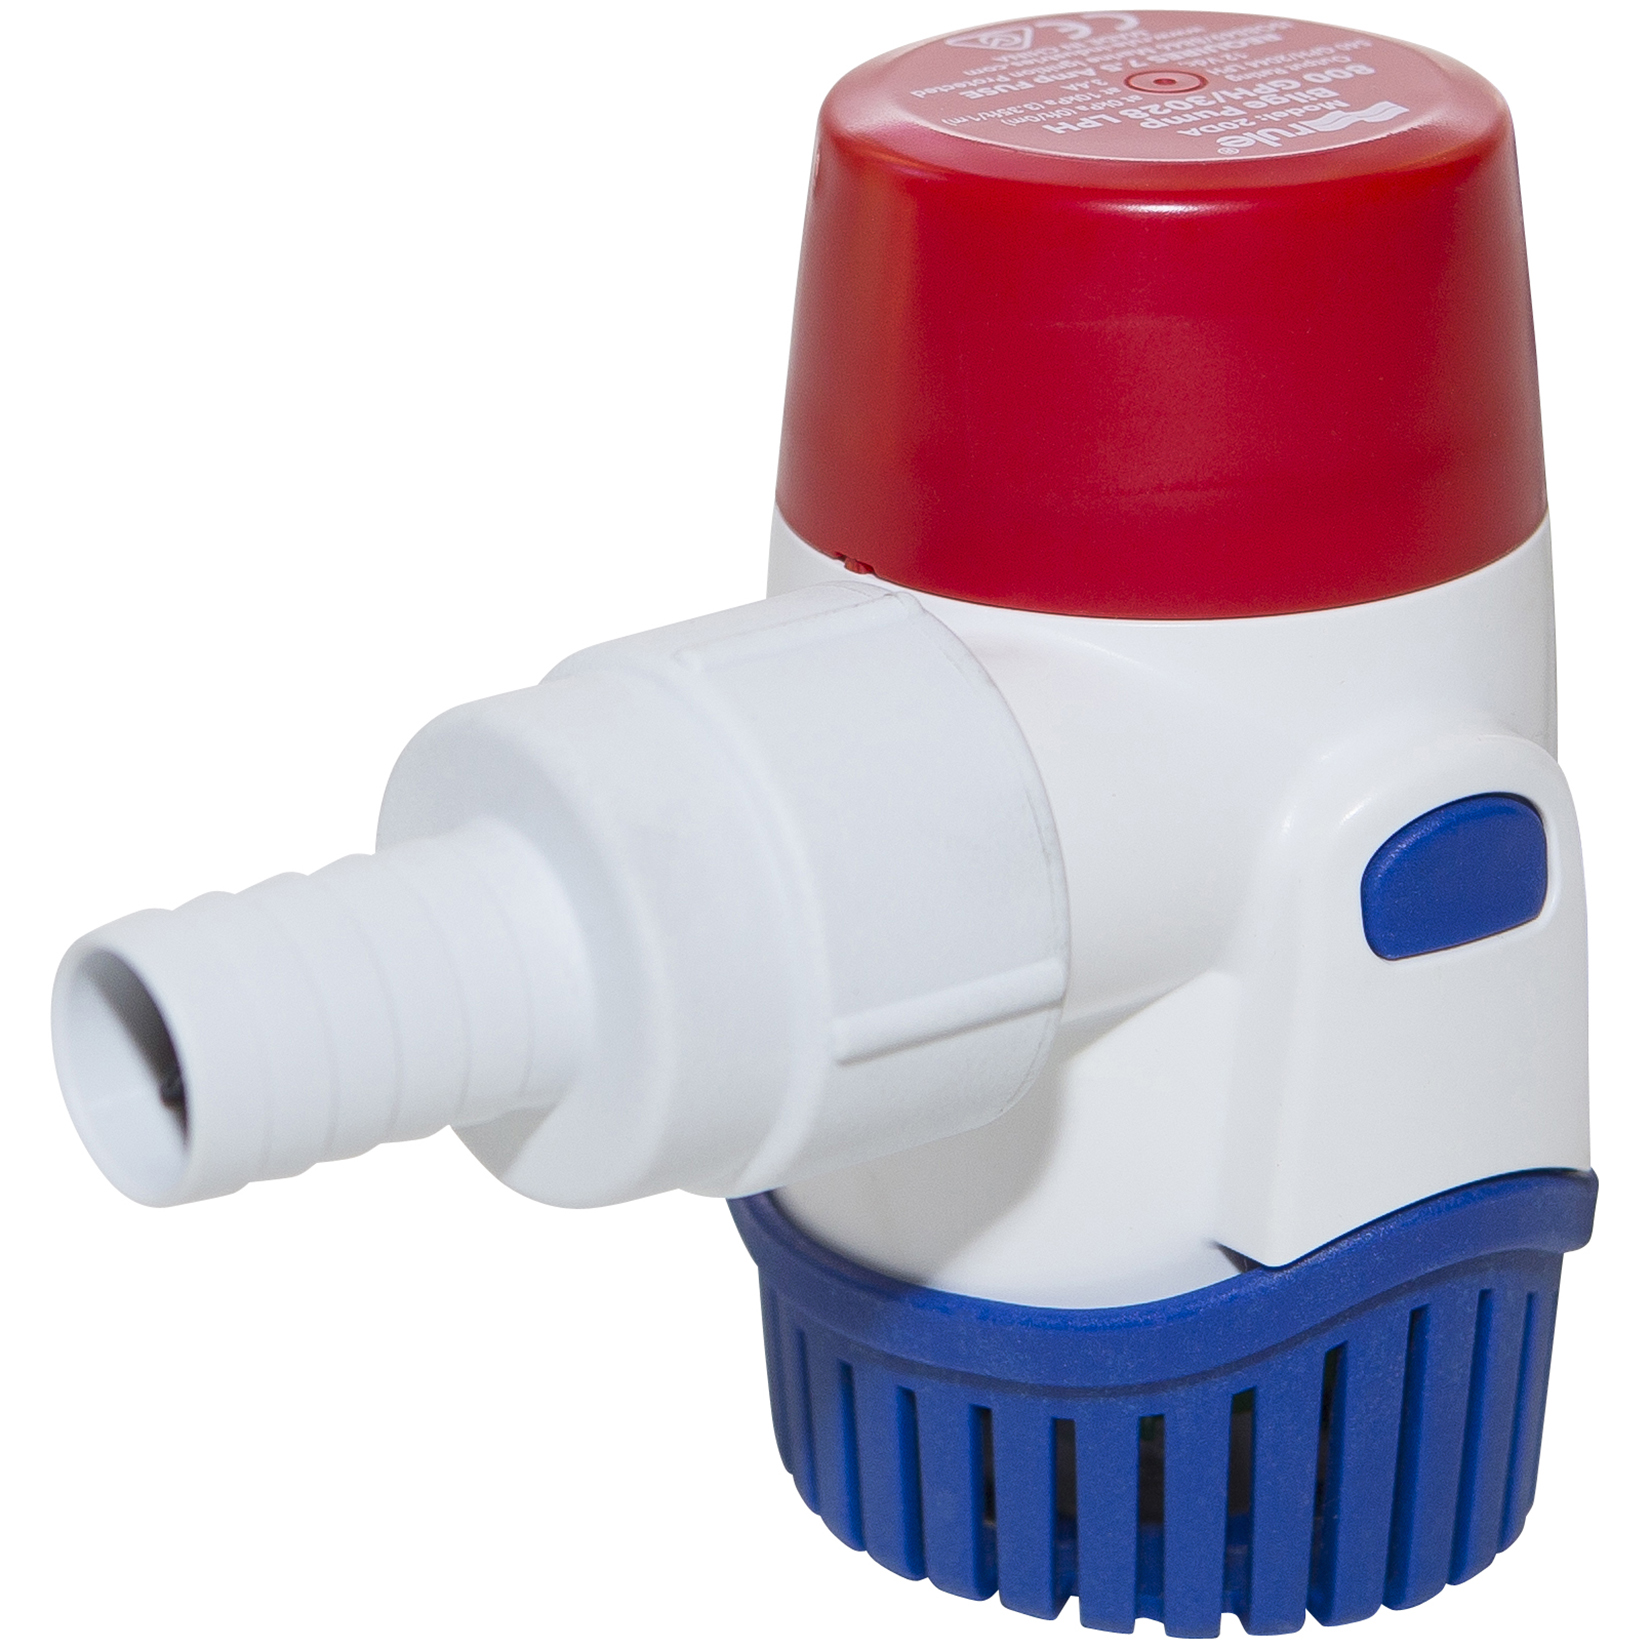 Rule 800 Standard 12V Bilge Pump photo